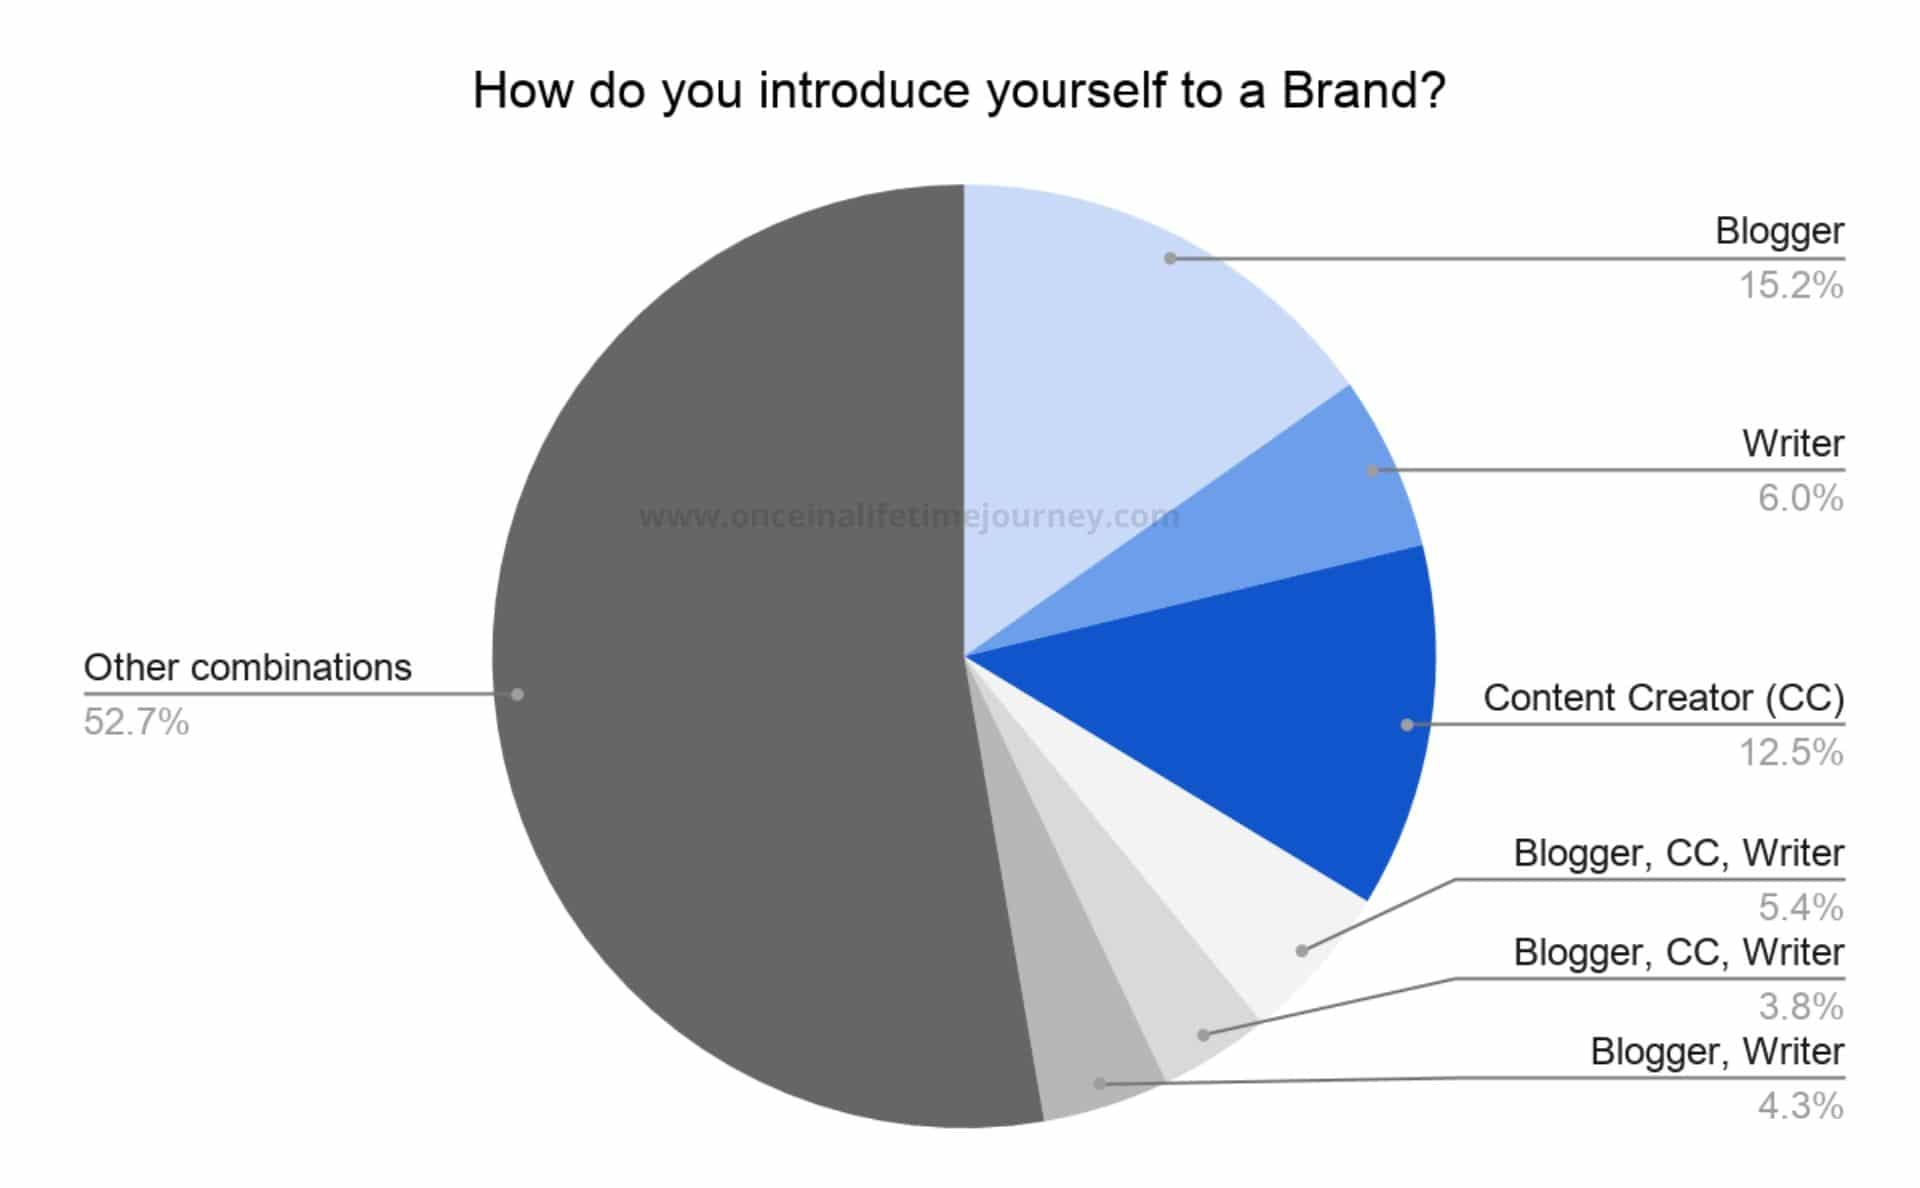 How Content Creators introduce themselves to Brands